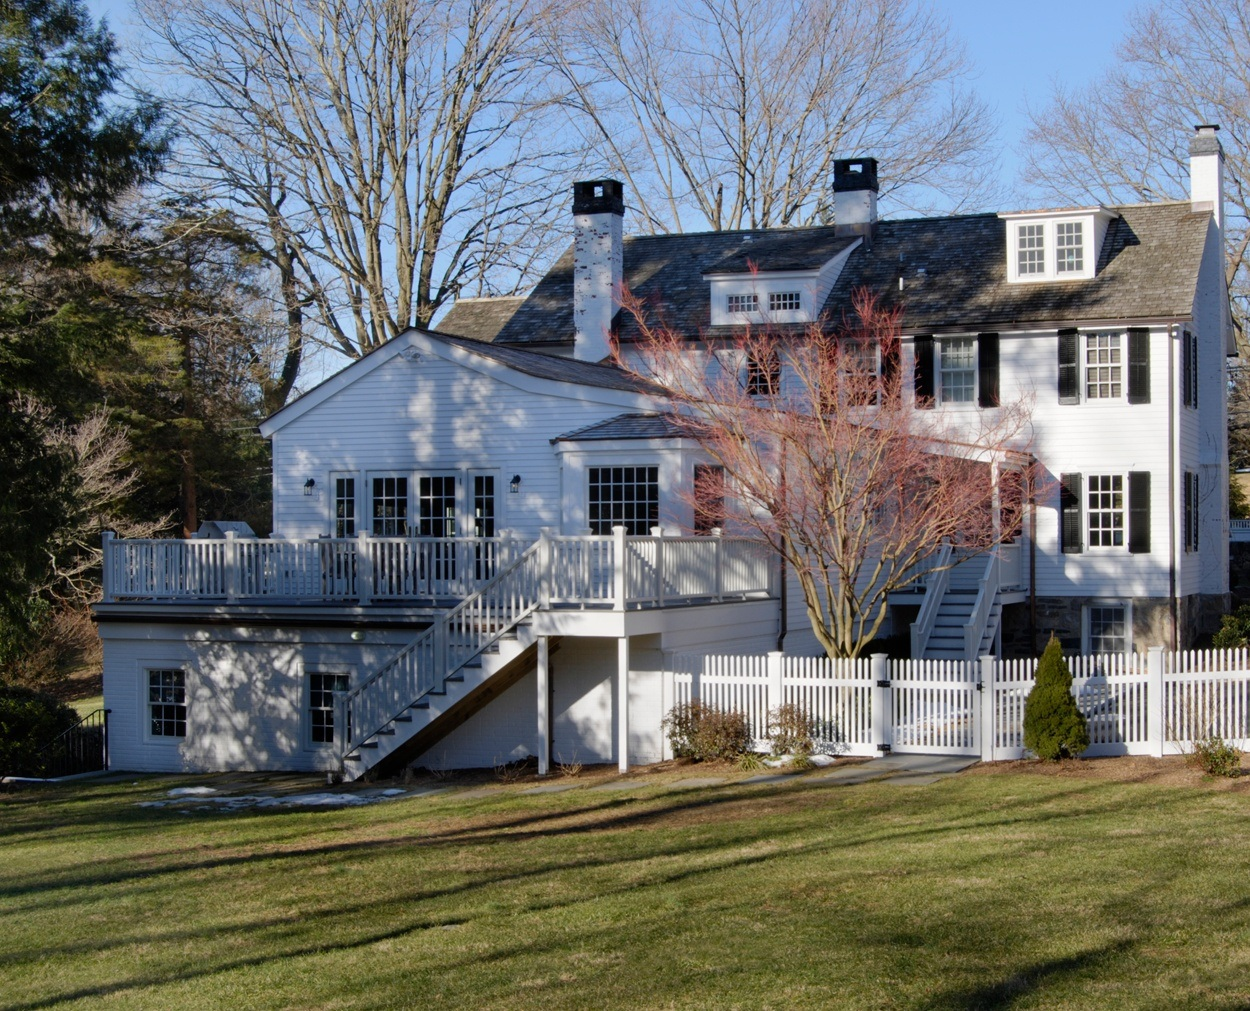 New Canaan 1850s home updated with a kitchen addition and overhaul.